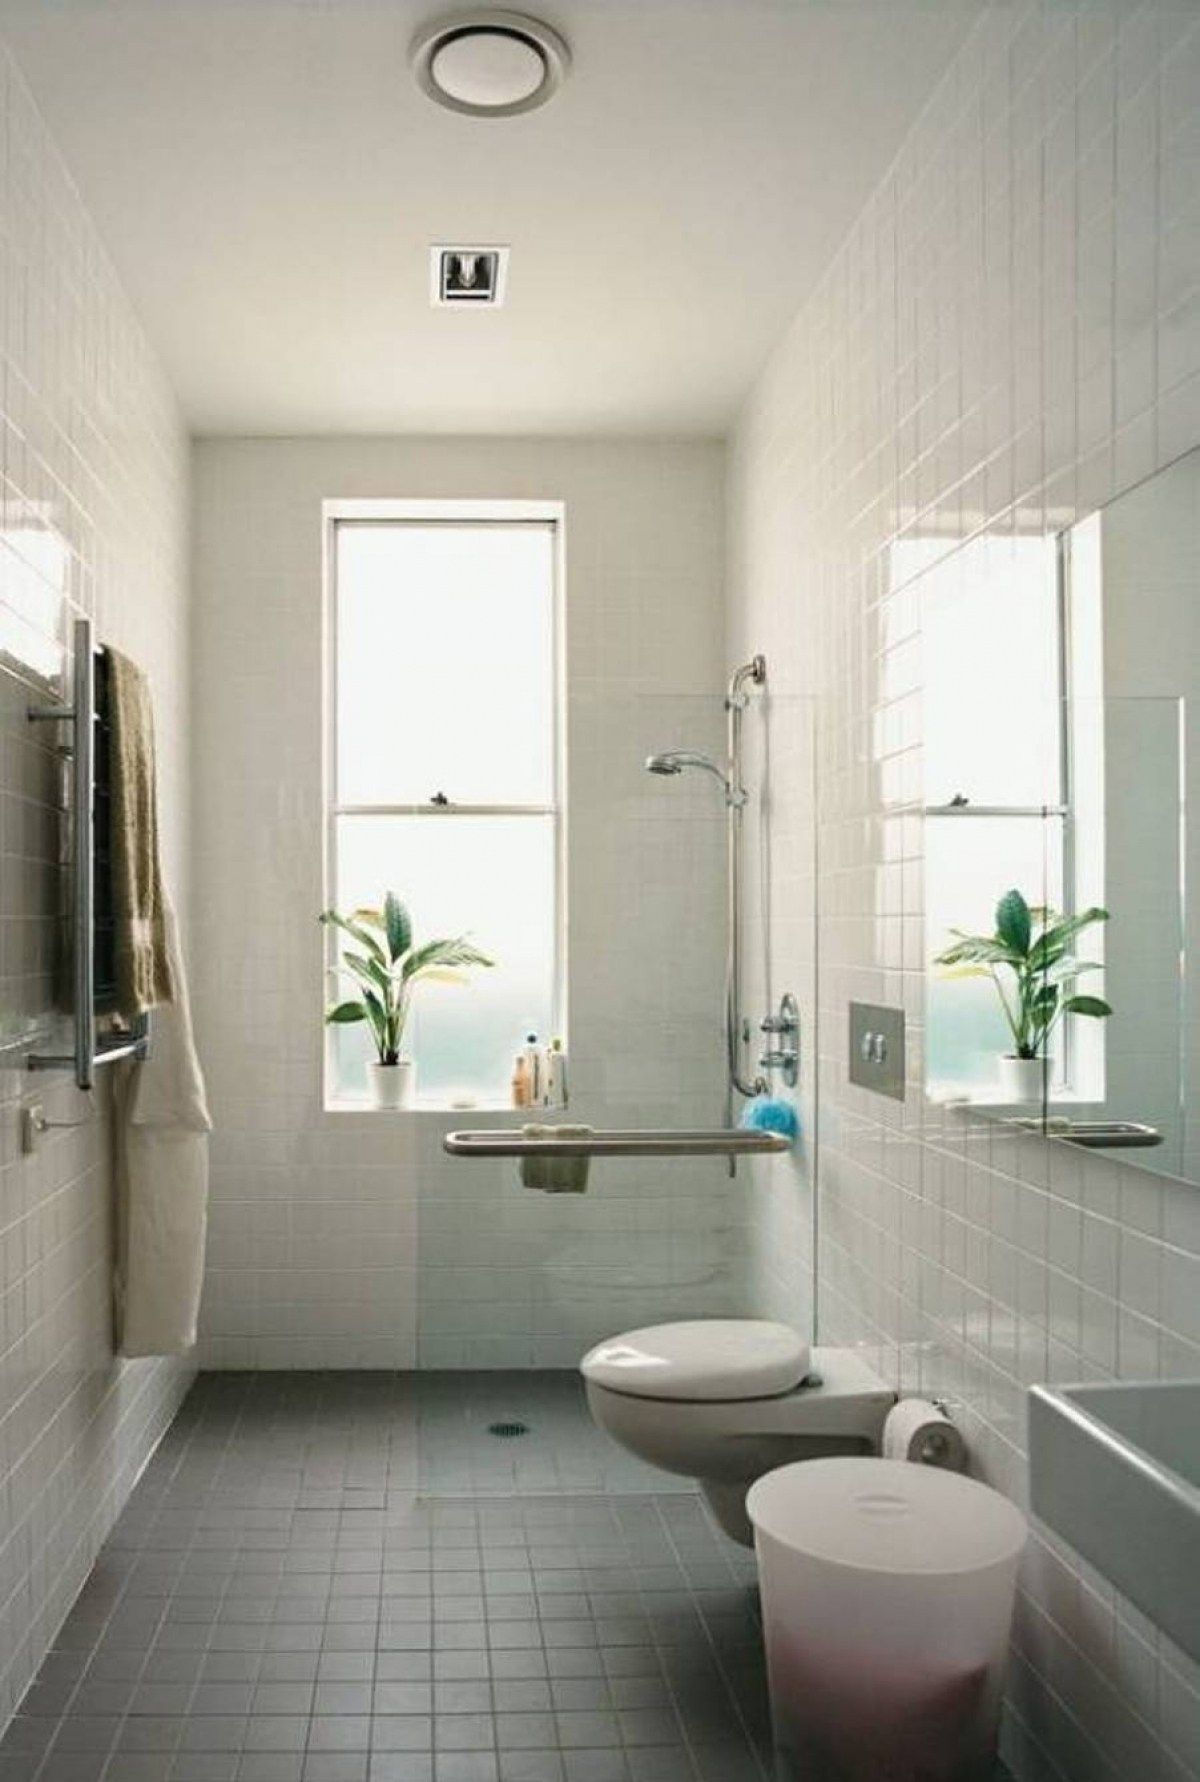 Bathroom small narrow bathroom ideas tub shower popular narrow bathroom ideas tub narrow Small bathroom design with bath and shower